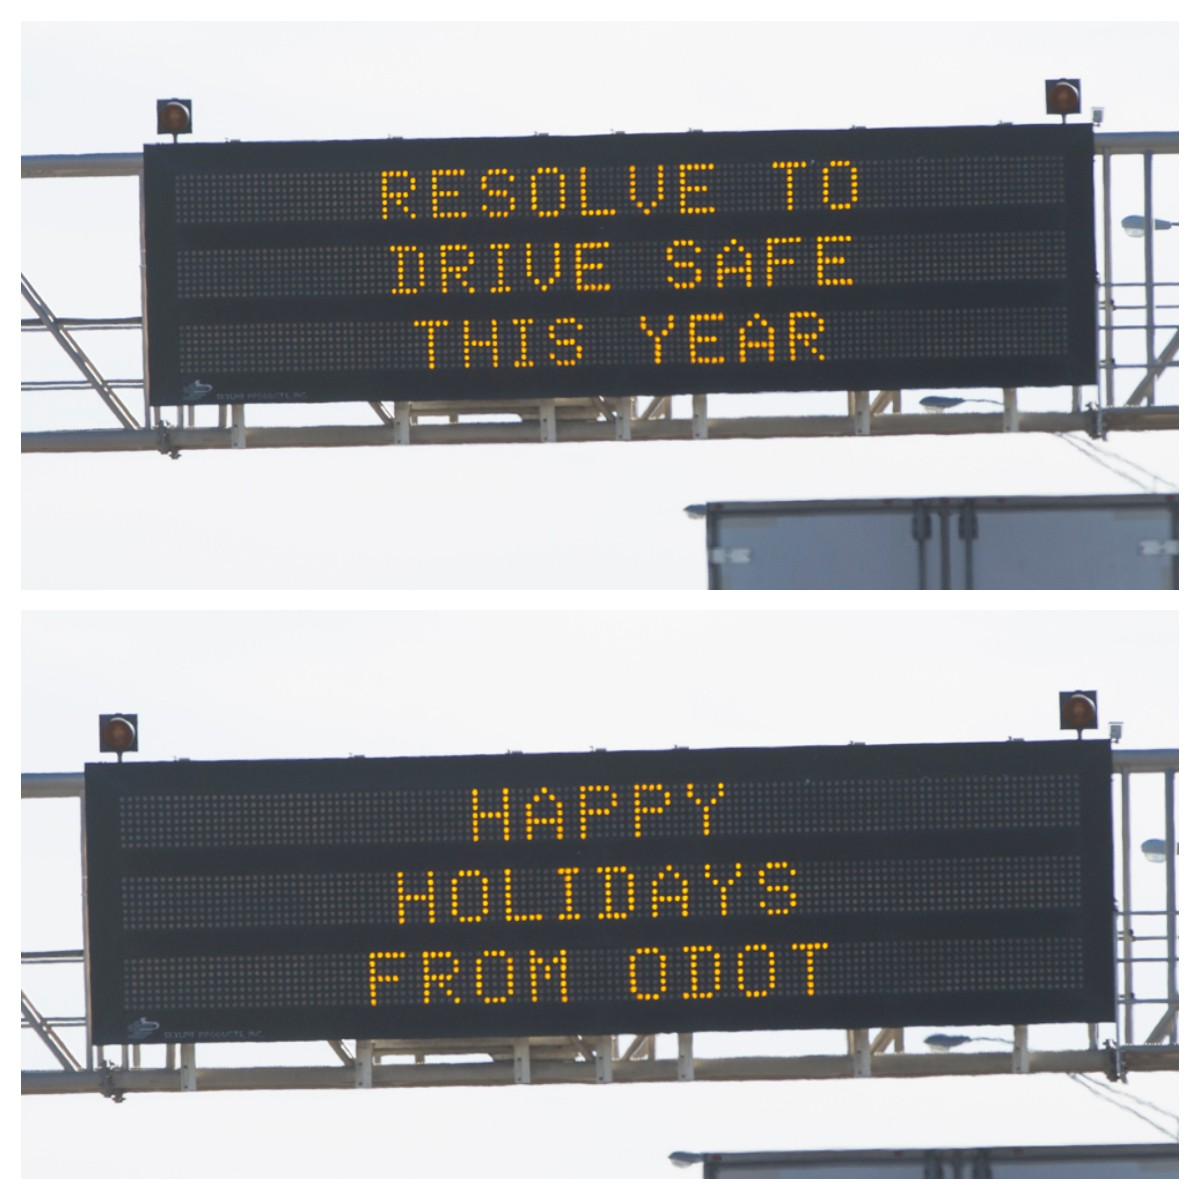 /content/dam/ok/en/odot/images/message-signs/12.28.16.jpg